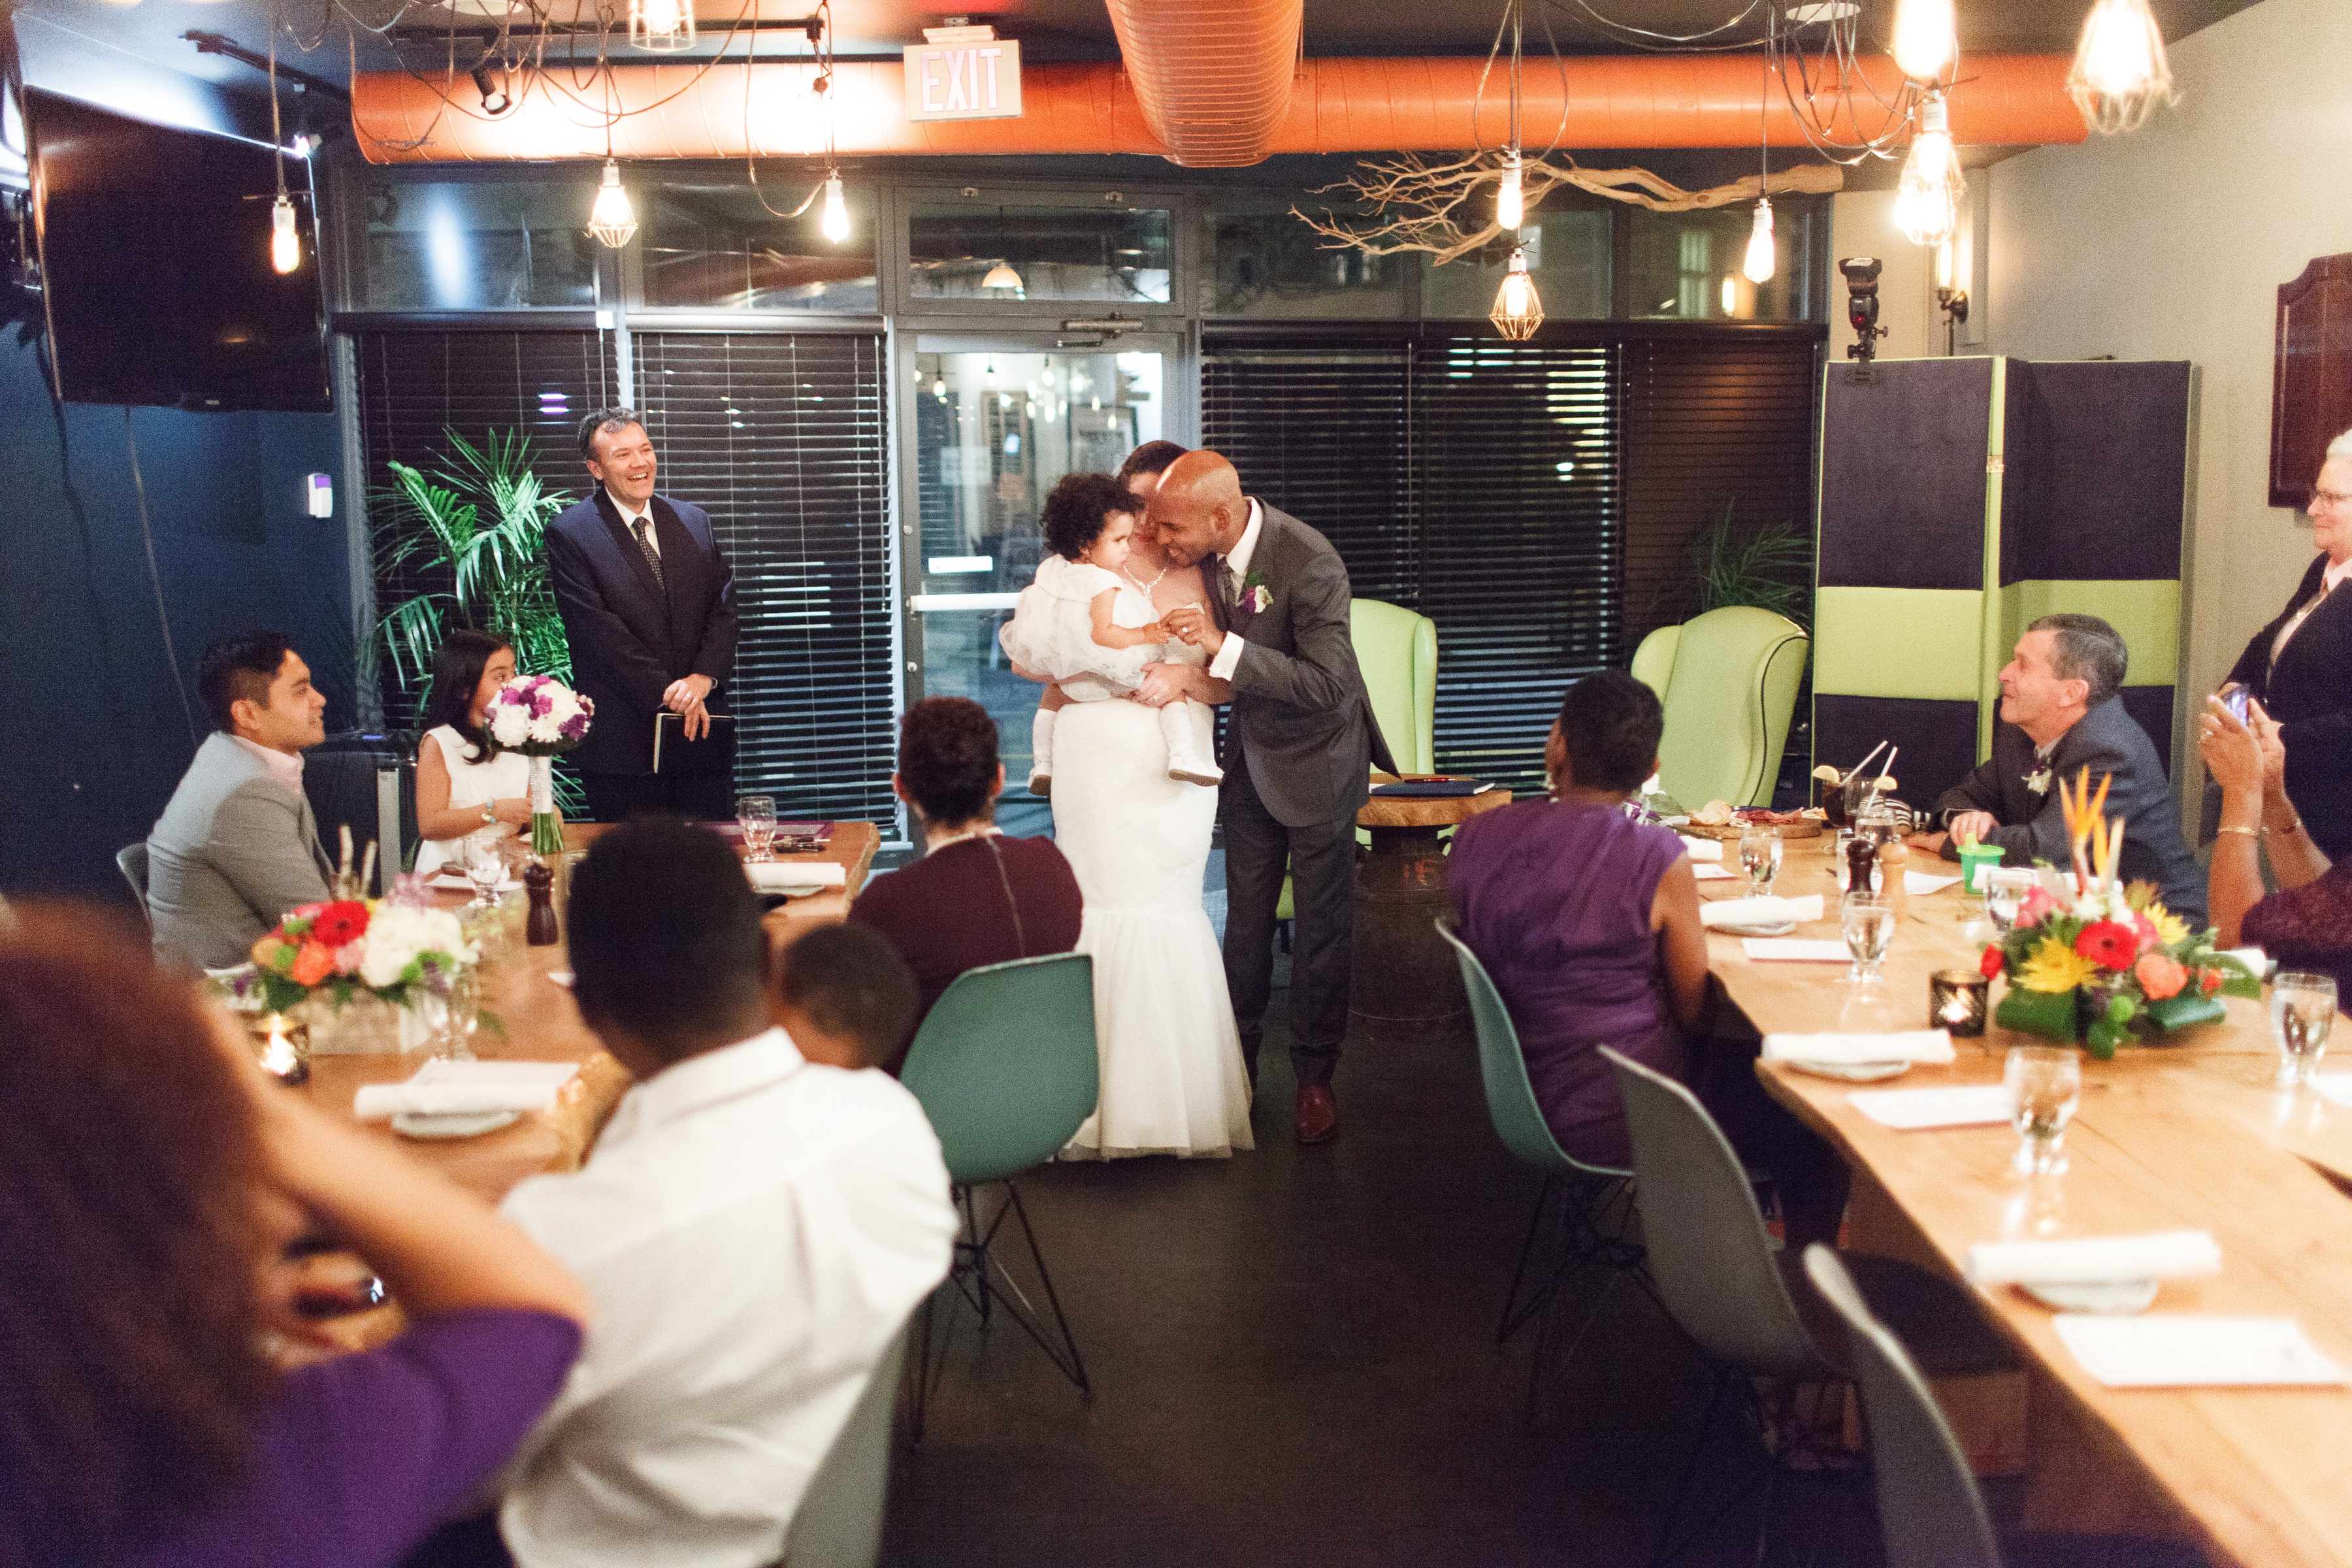 ottawa-fraser-cafe-wedding-venue